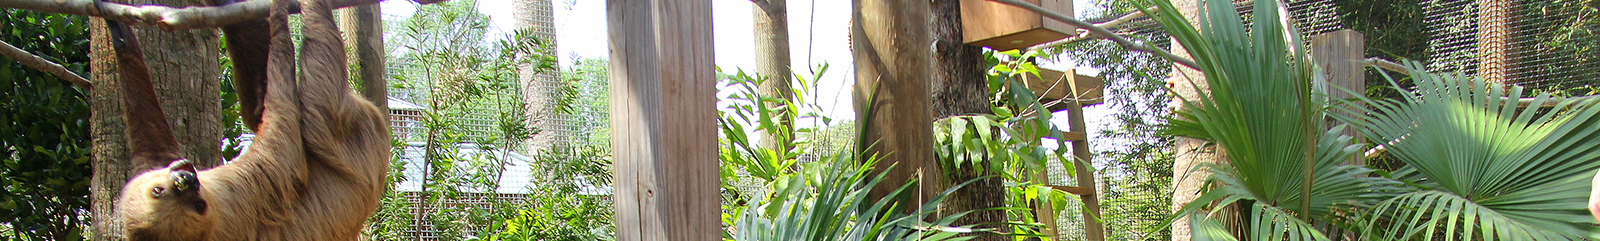 wildlife-park-header.png